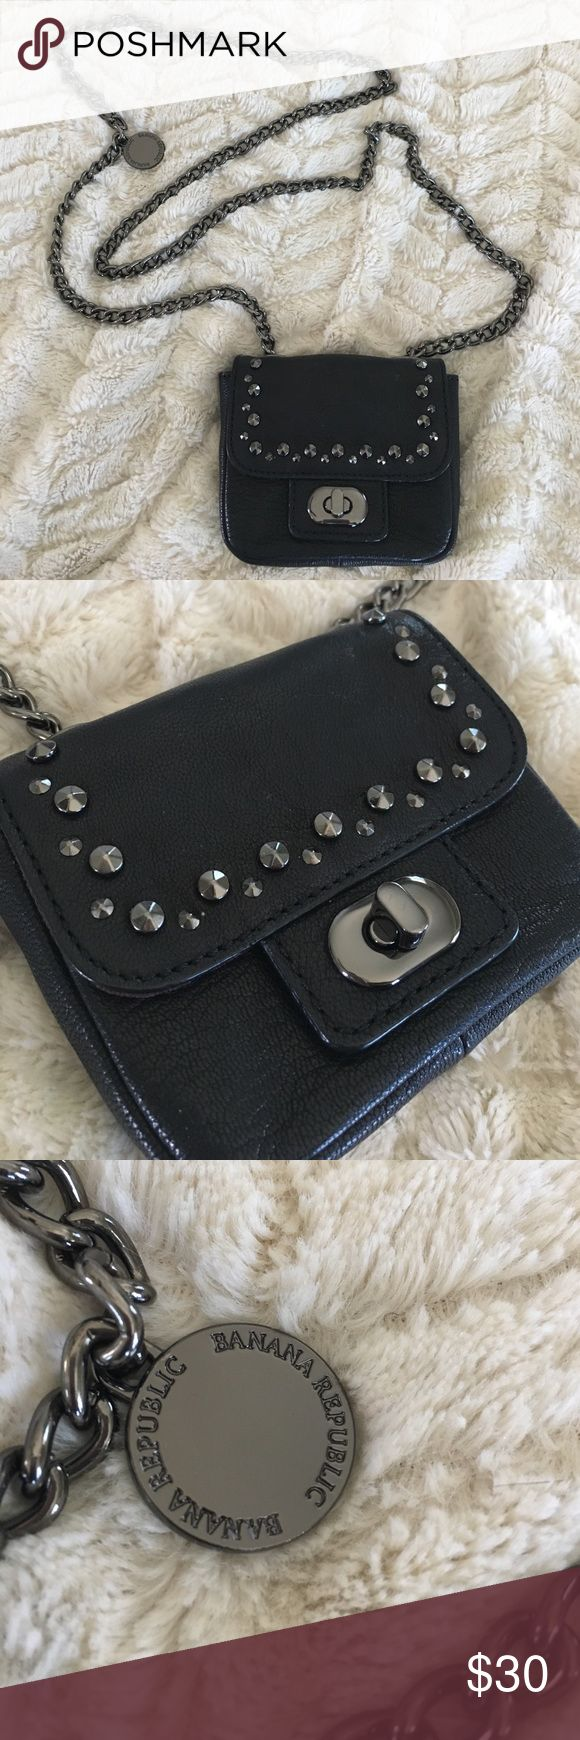 Banana Republic purse Banana Republic small shoulder purse. Black leather with detail. Small but classy. Can wear over the shoulder or across the body. Classic Banana Republic Bags Shoulder Bags